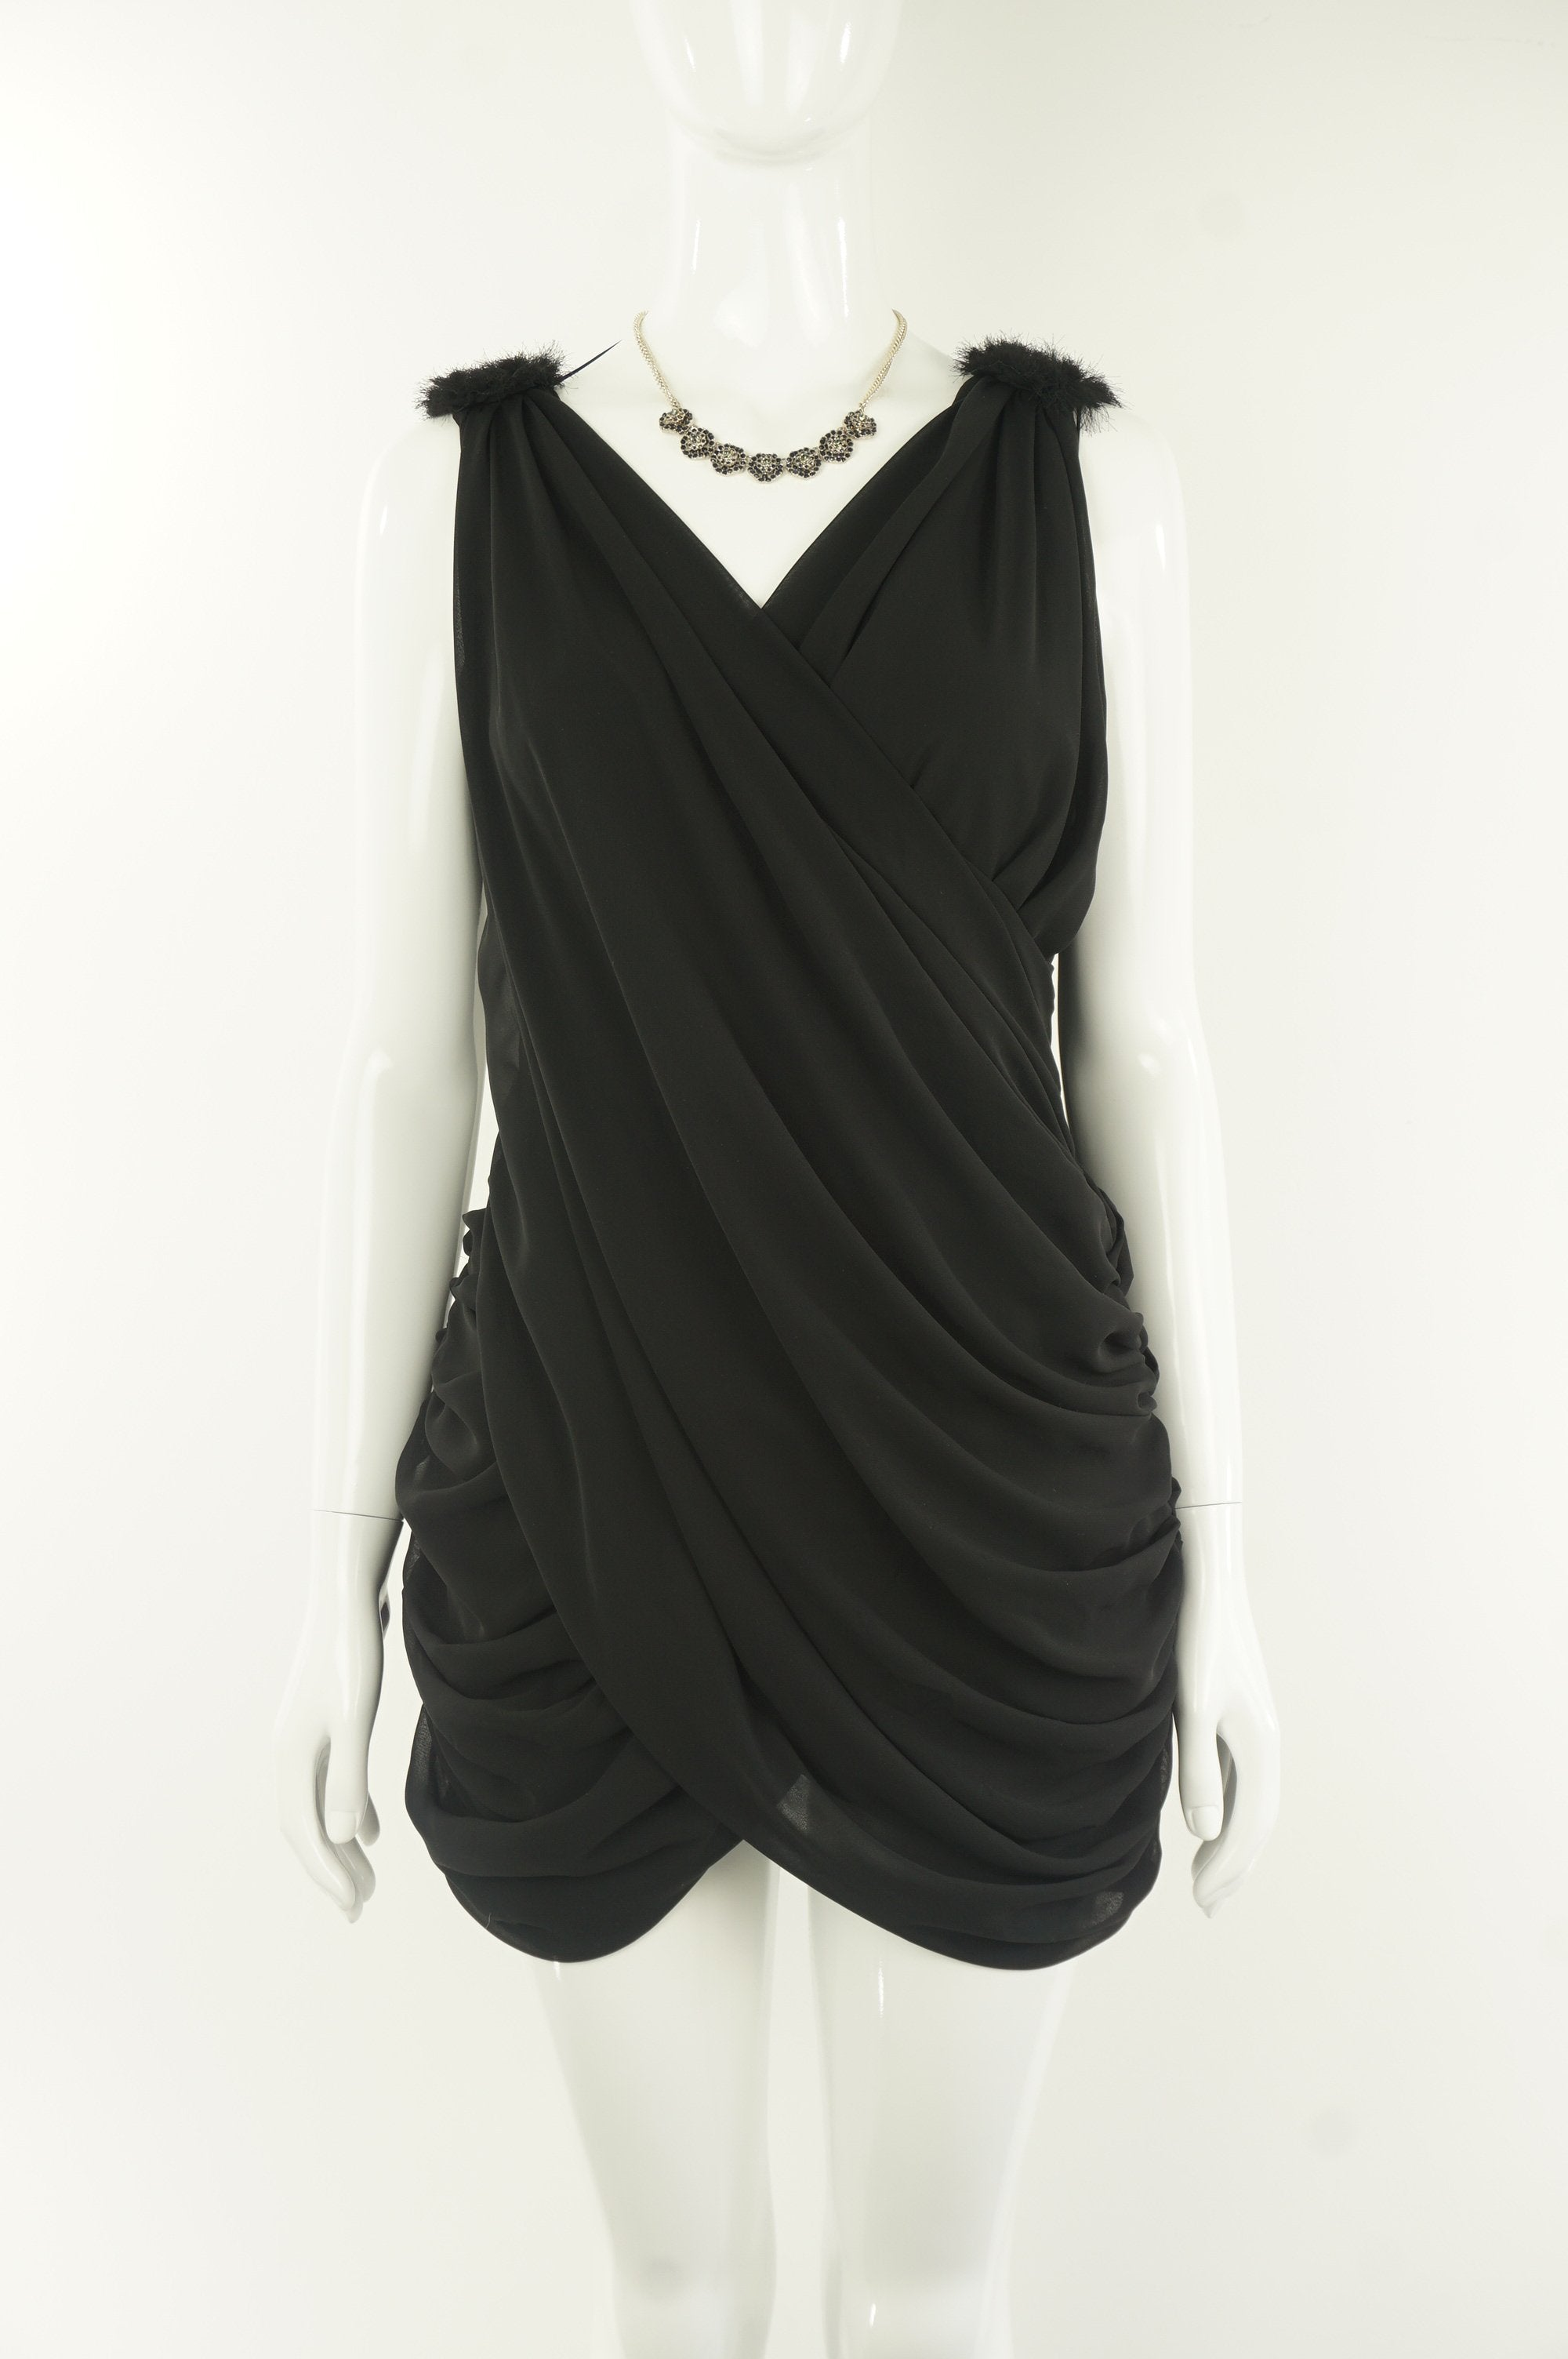 Sievergute Crossed Deep V-Neck Cocktail Dress , Sexy crossed deep V-neck cocktail black dress that makes head turn at any night parties, Black, Soft Flowy Fabric, women's Dresses & Rompers, women's Black Dresses & Rompers, Sievergute women's Dresses & Rompers, Sexy women's cocktail black wrap asymetrical dress, crossed wrap around deep V-neck open back asymetrical dress, women's party short wrap around dress